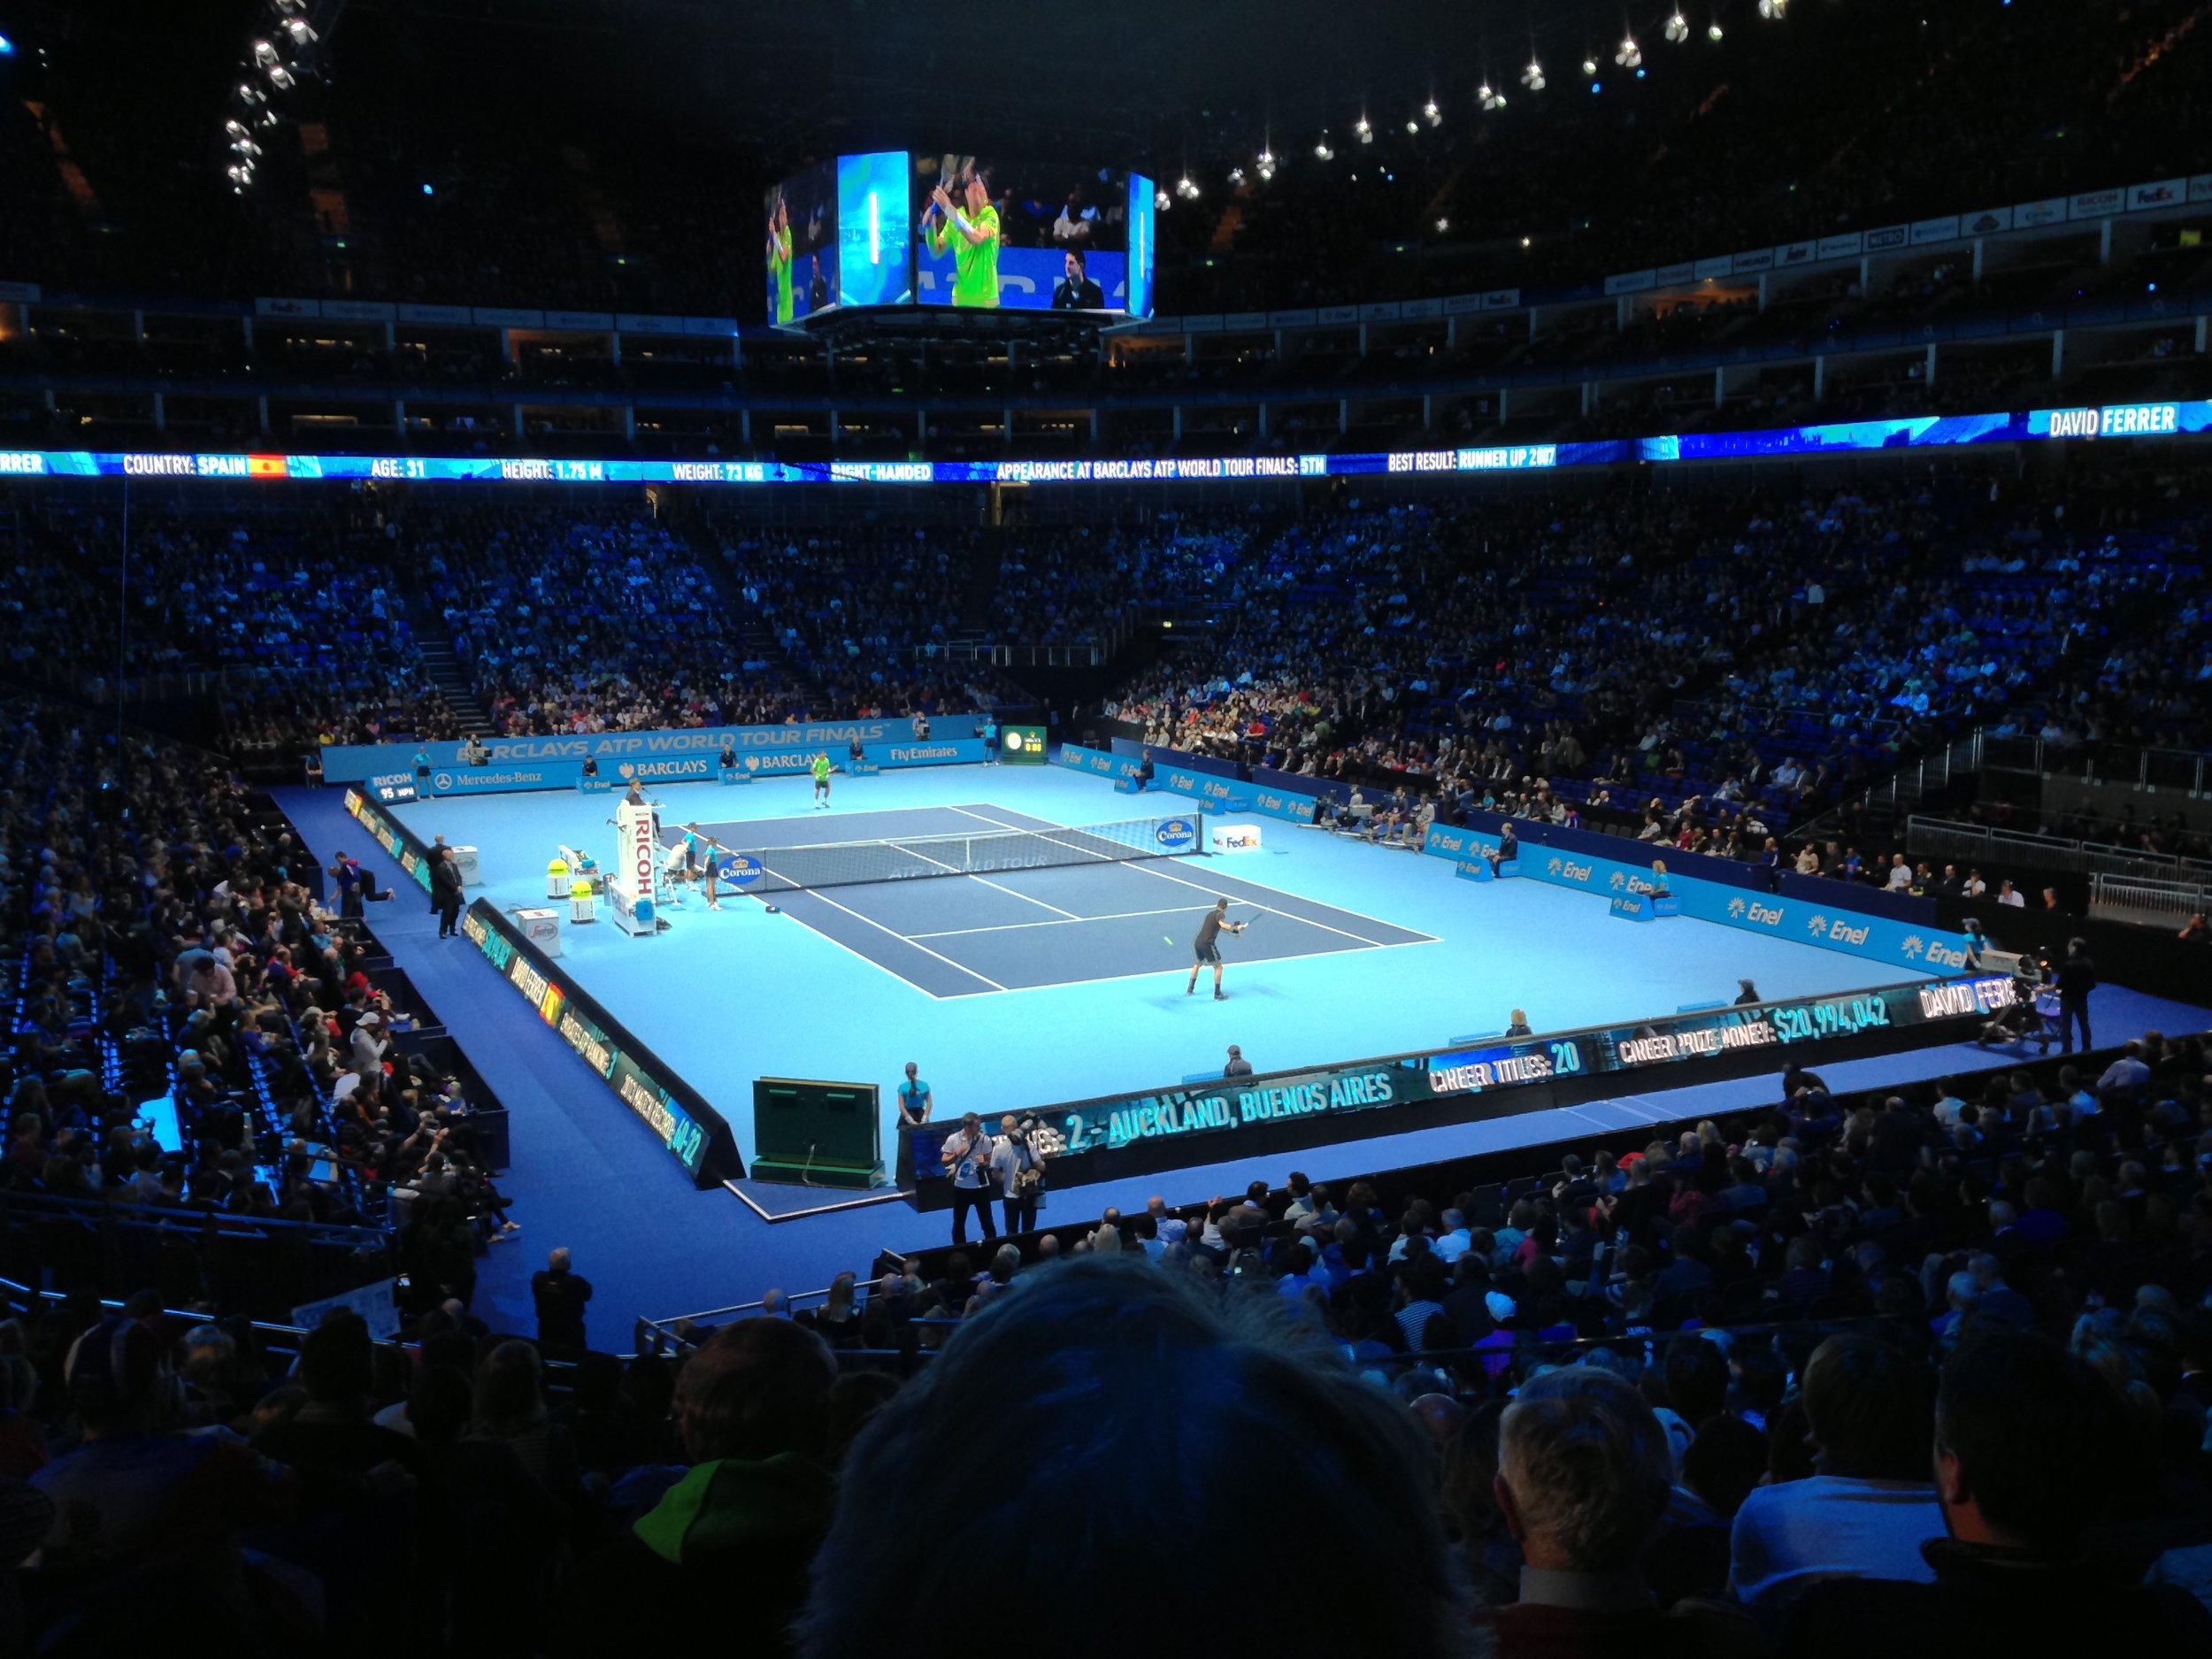 BARCLAYS ATP TENNIS /  Creative Director on the ATP tennis finals at the O2. Establishing consumer experientials, an interactive arena show and creating film content for ticket promotions.